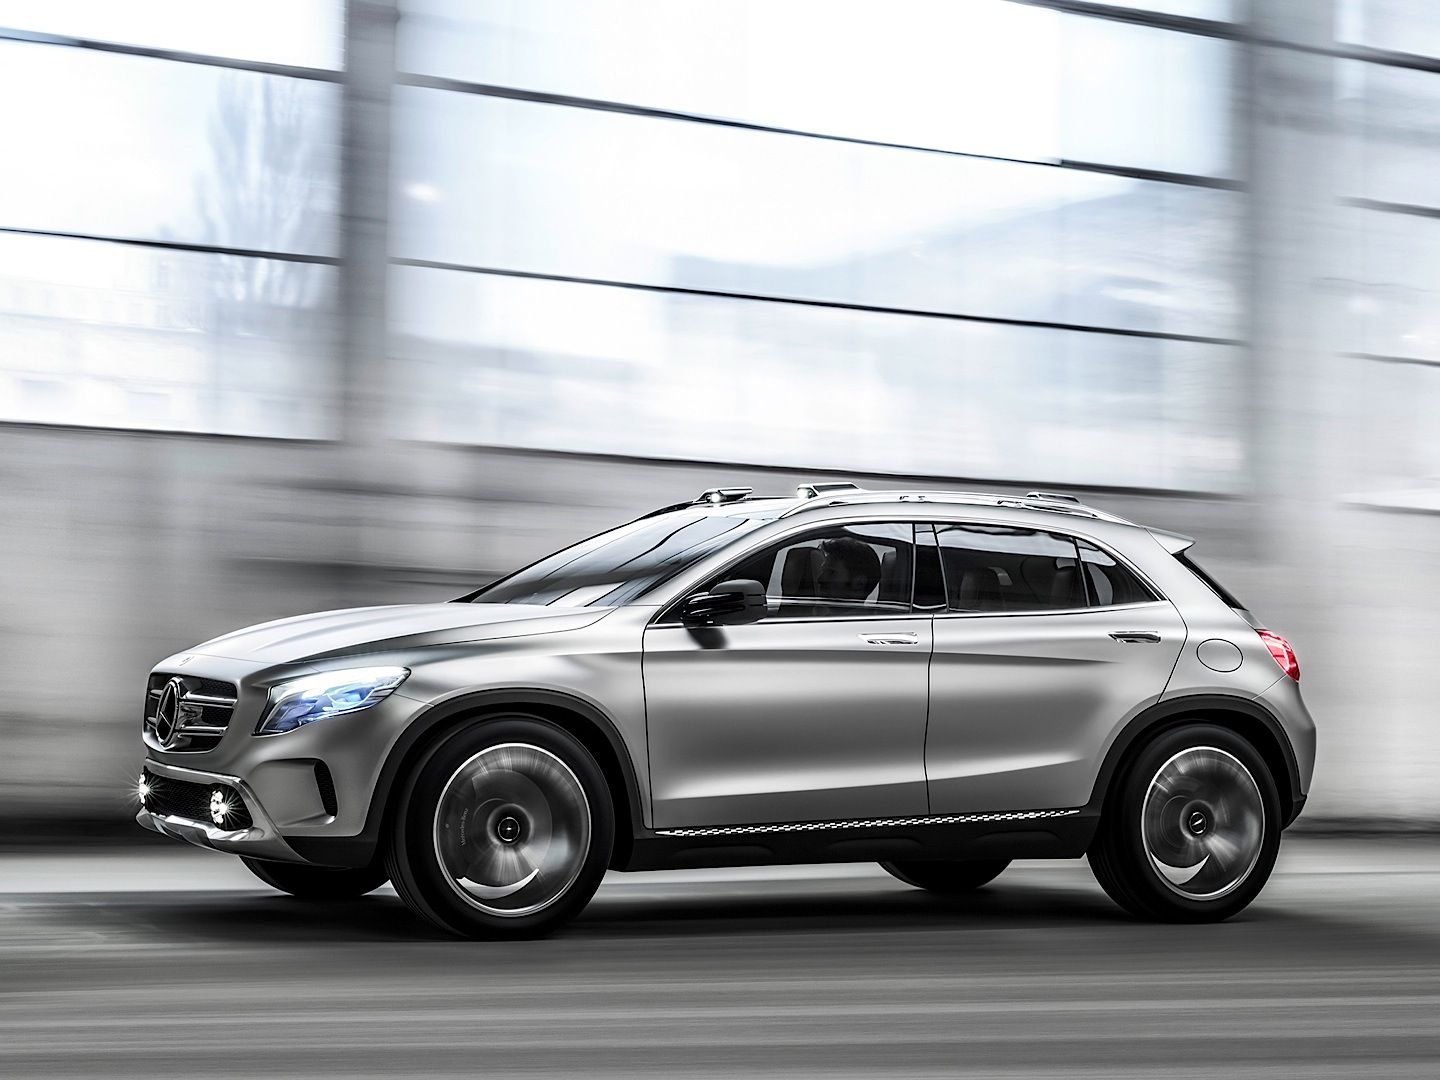 The upcoming mercedes benz gla compact crossover should show us its production trim at the